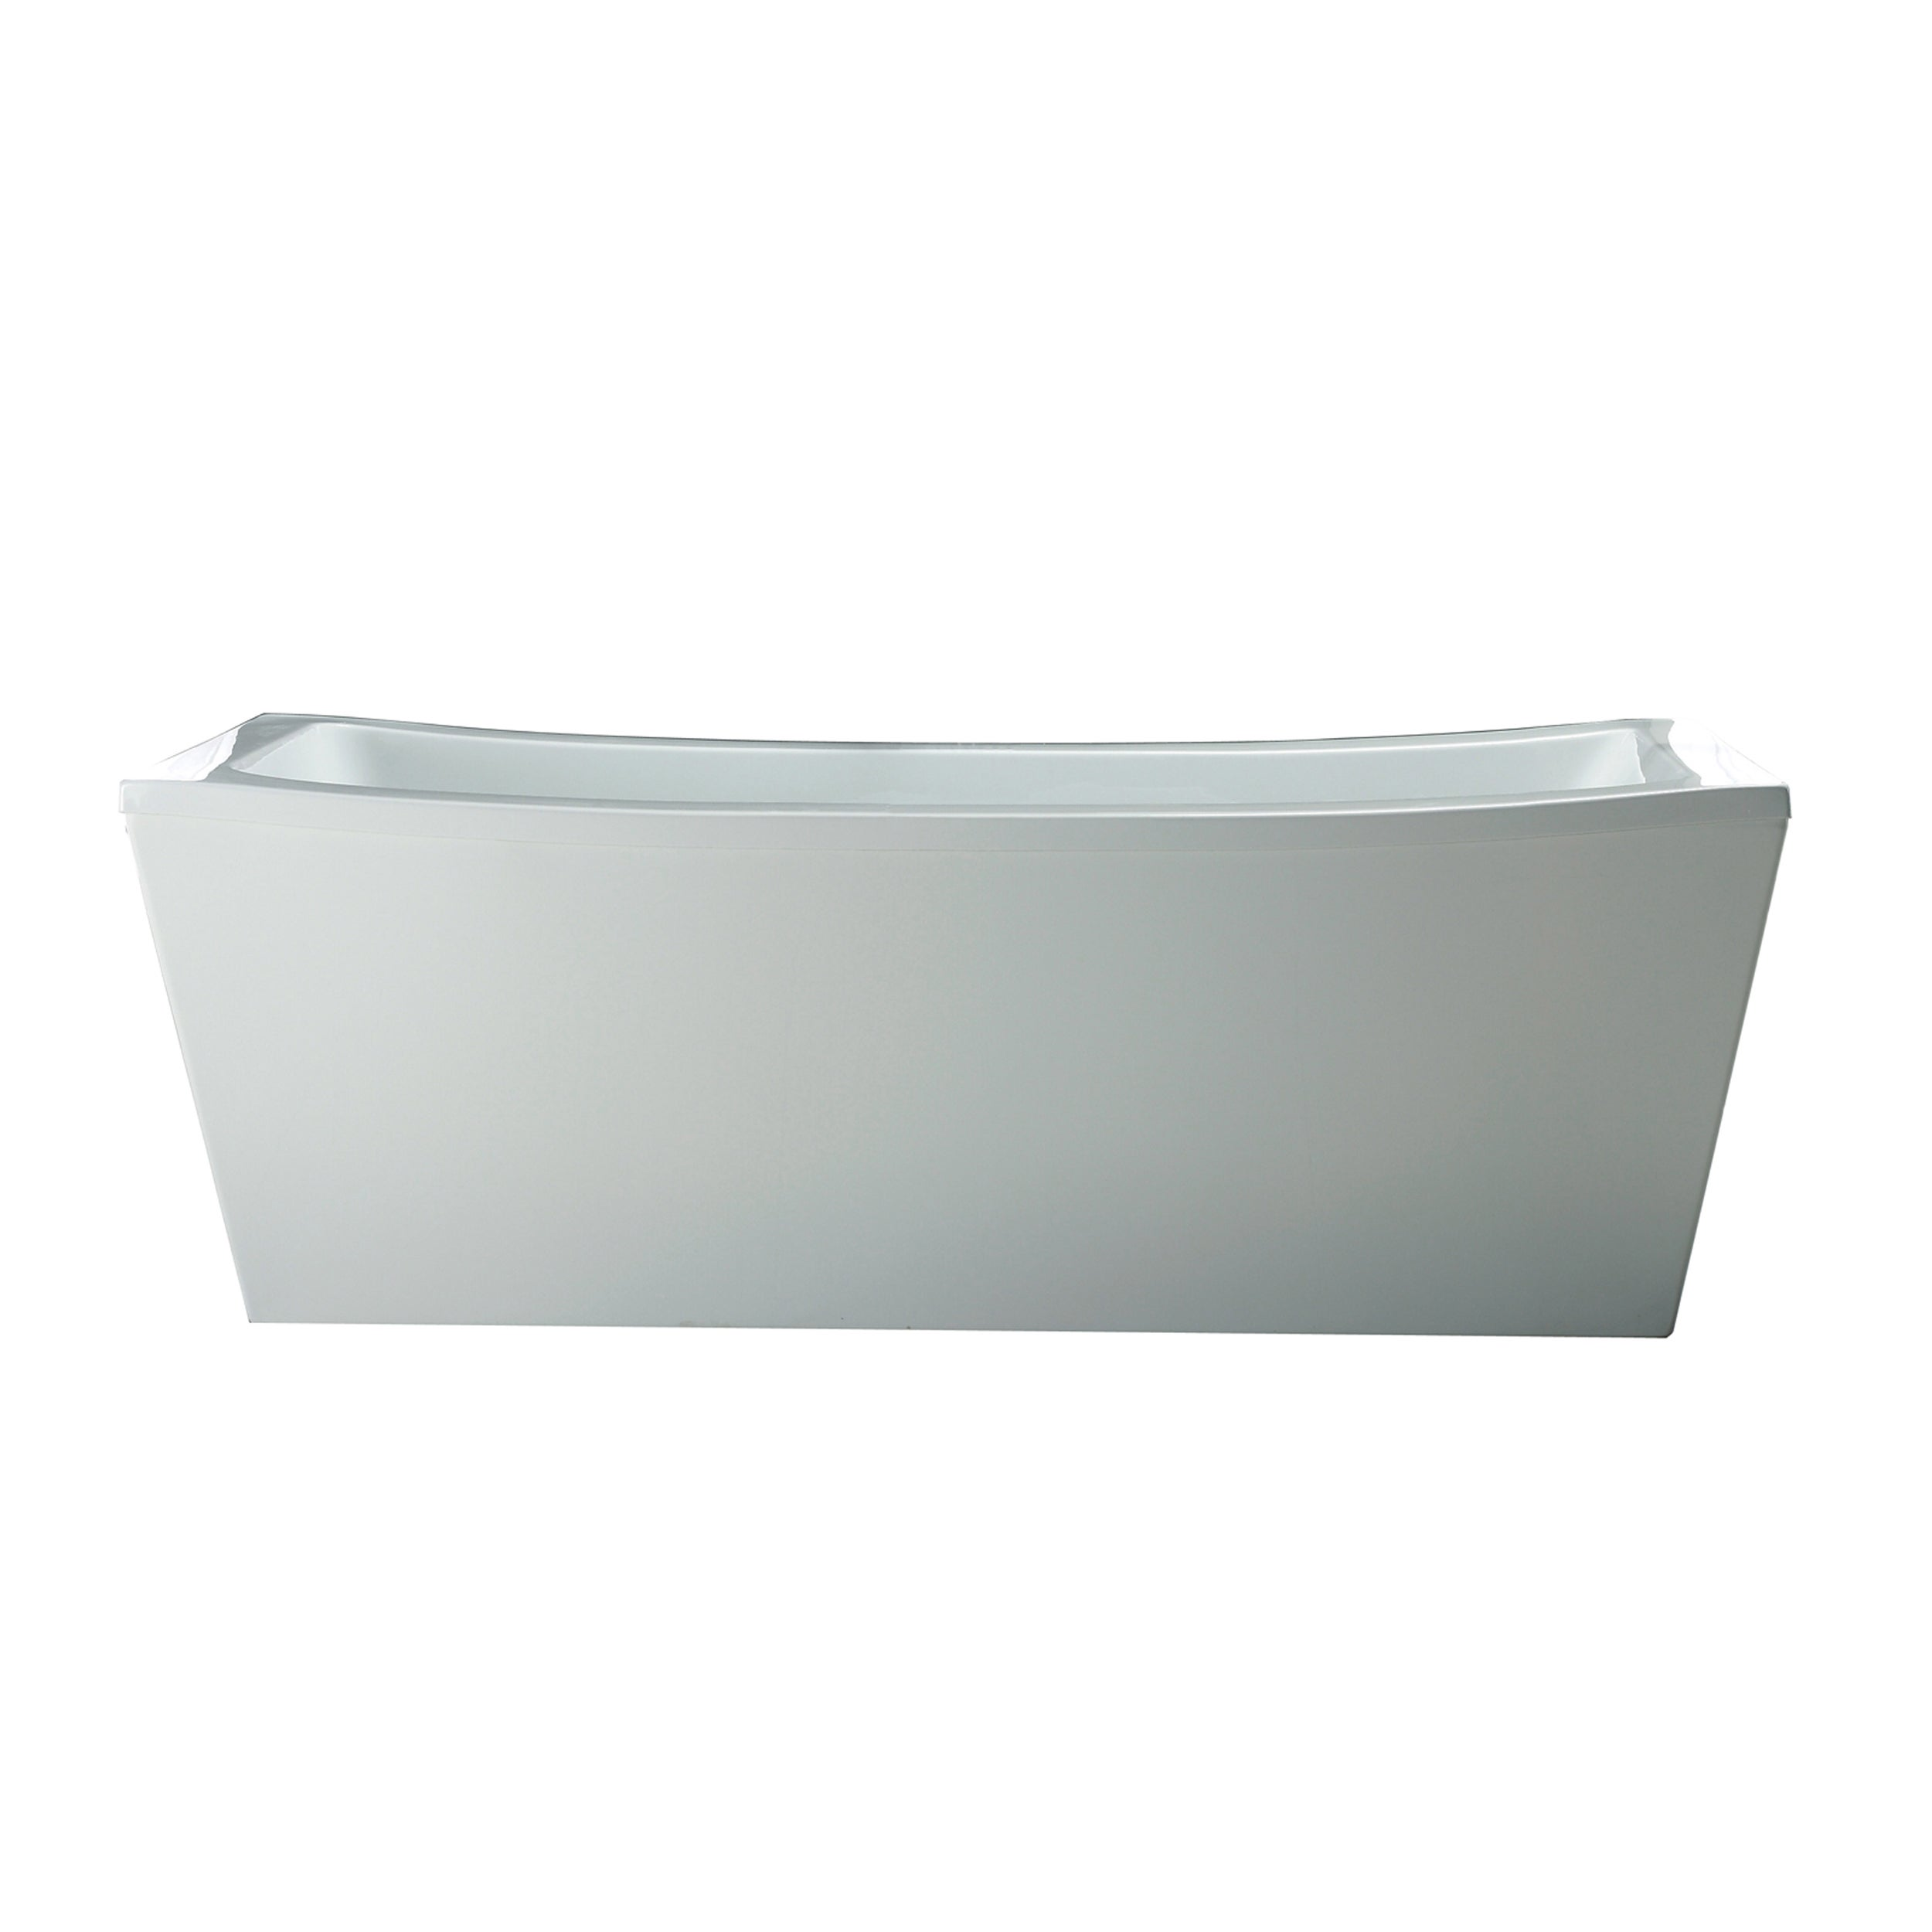 bathtubs shipping bathtub anzzi today in freestanding wyndham home garden free bank white product ft series overstock